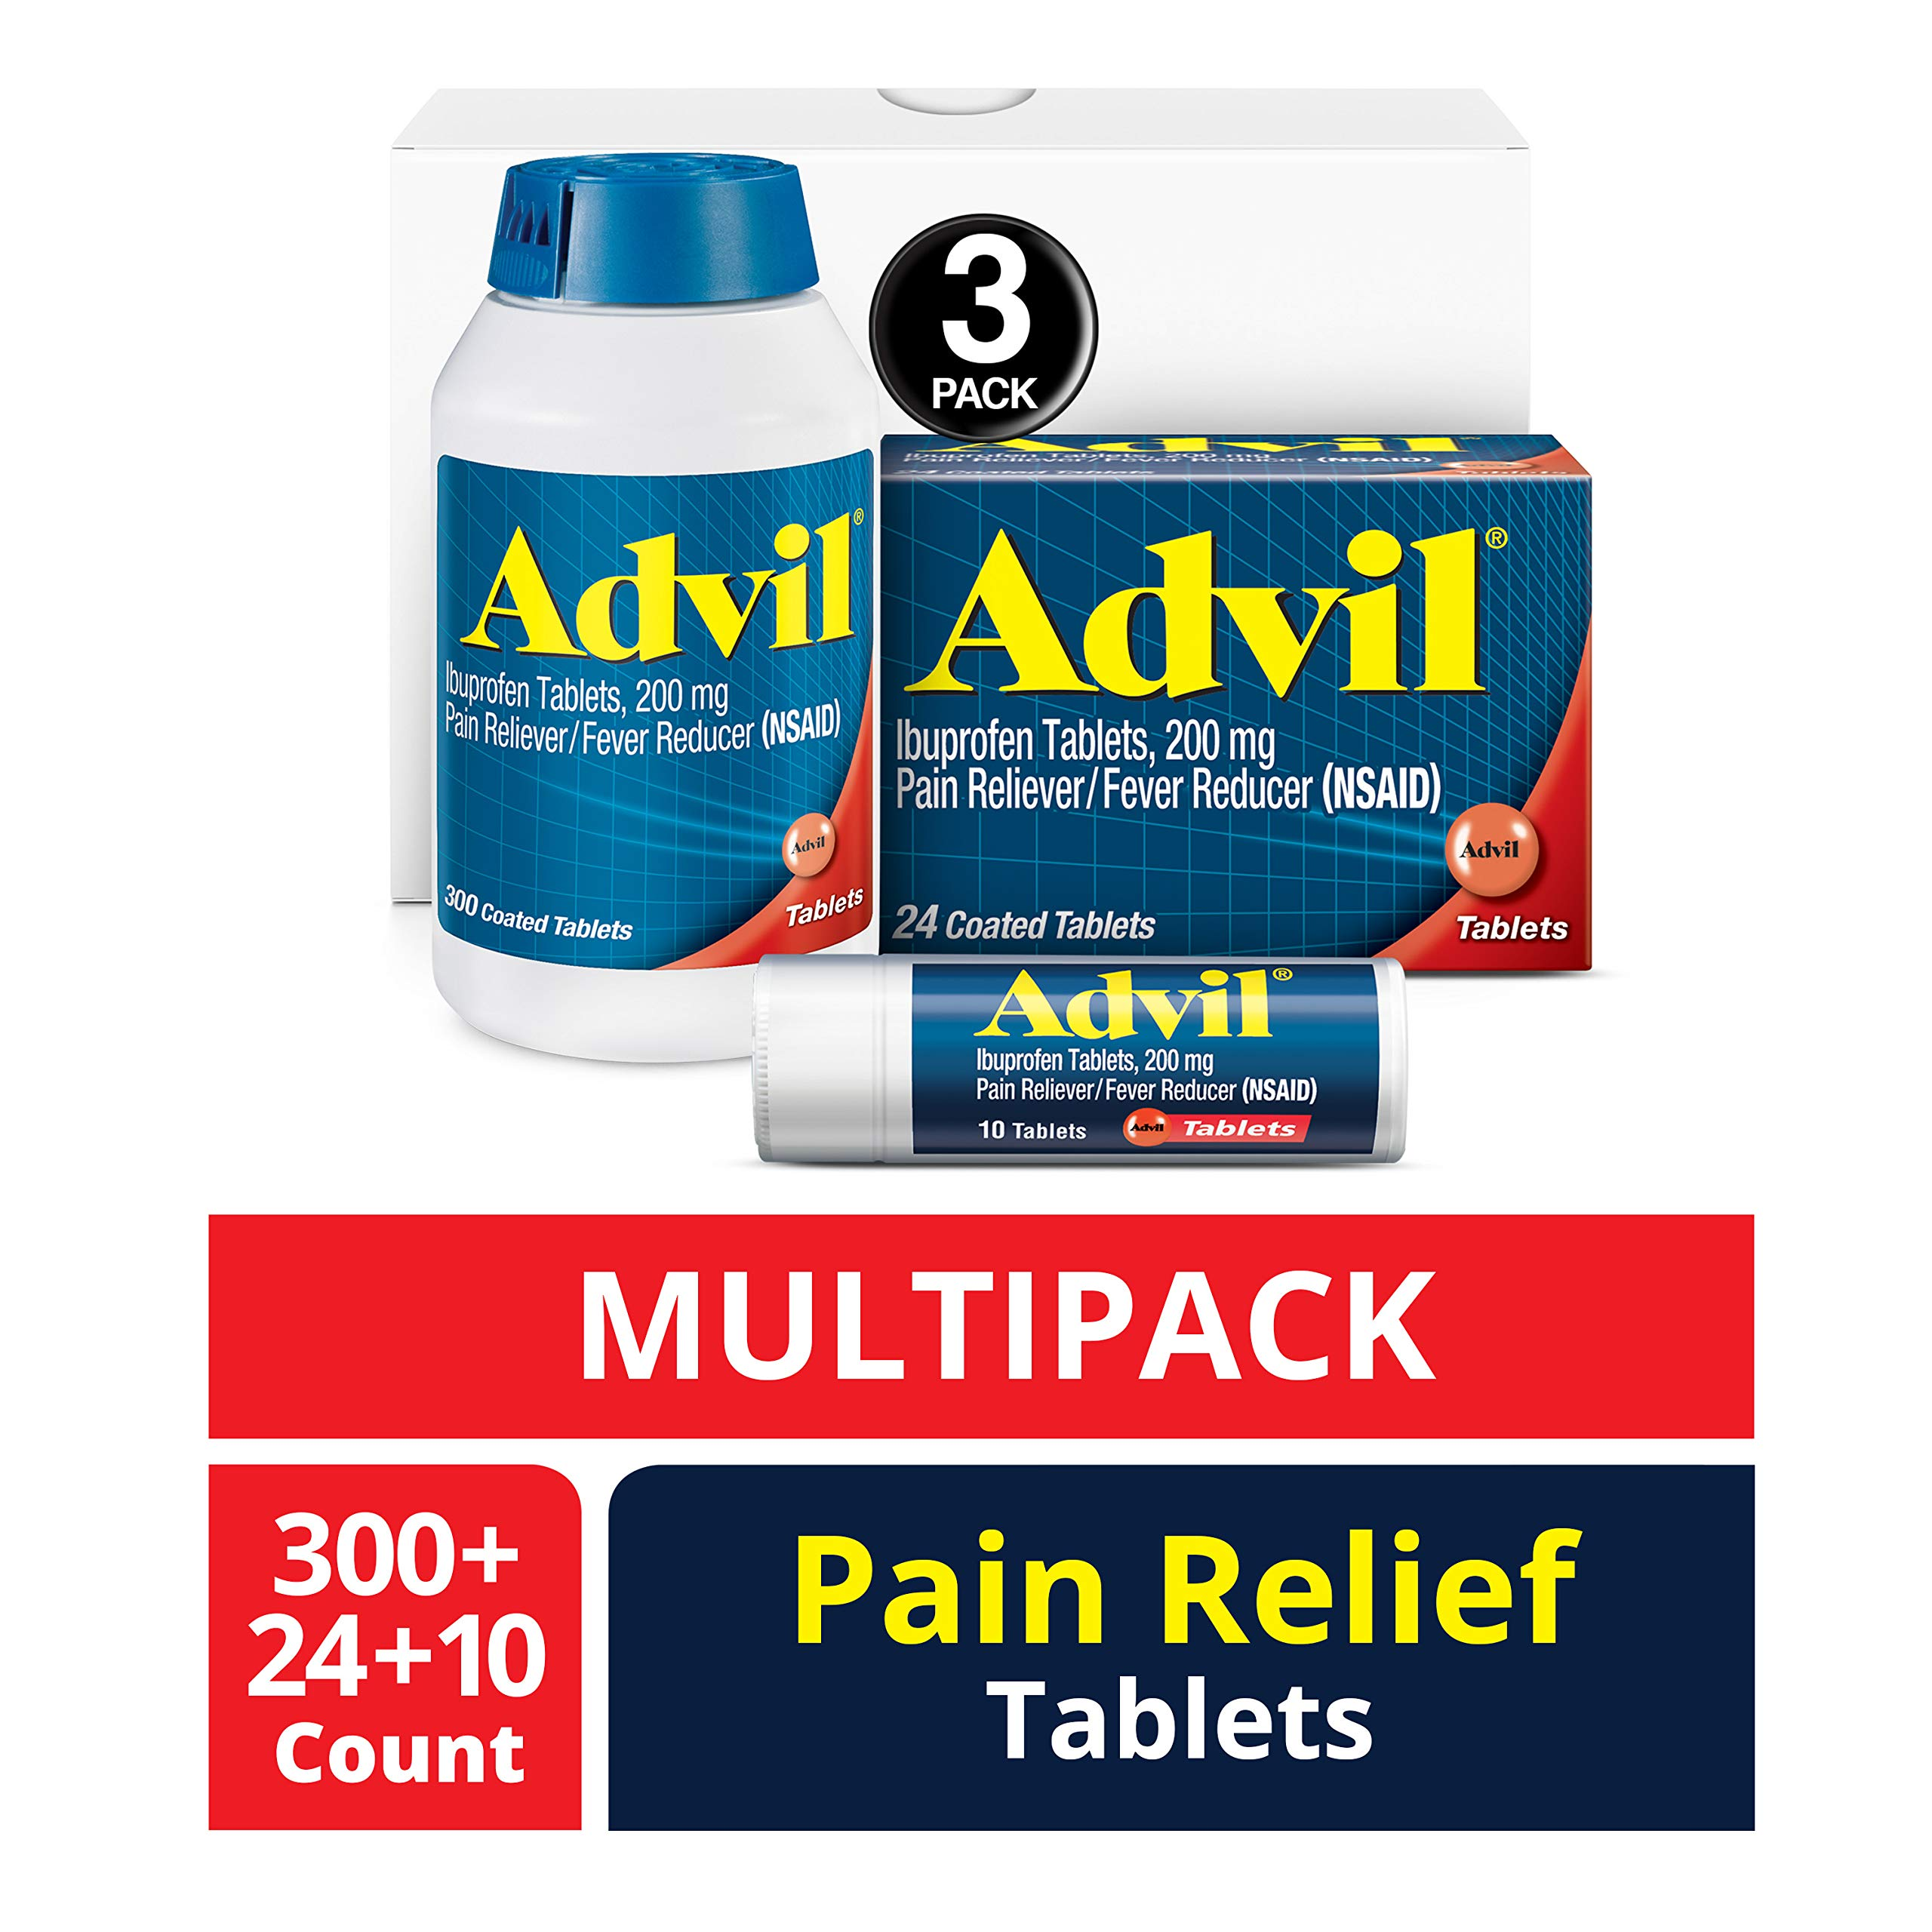 Advil (300 Count, 24 Count, 10 Count) Home & Away Pack, Pain Reliever / Fever Reducer Coated Tablet, 200mg Ibuprofen, Temporary Pain Relief by Advil